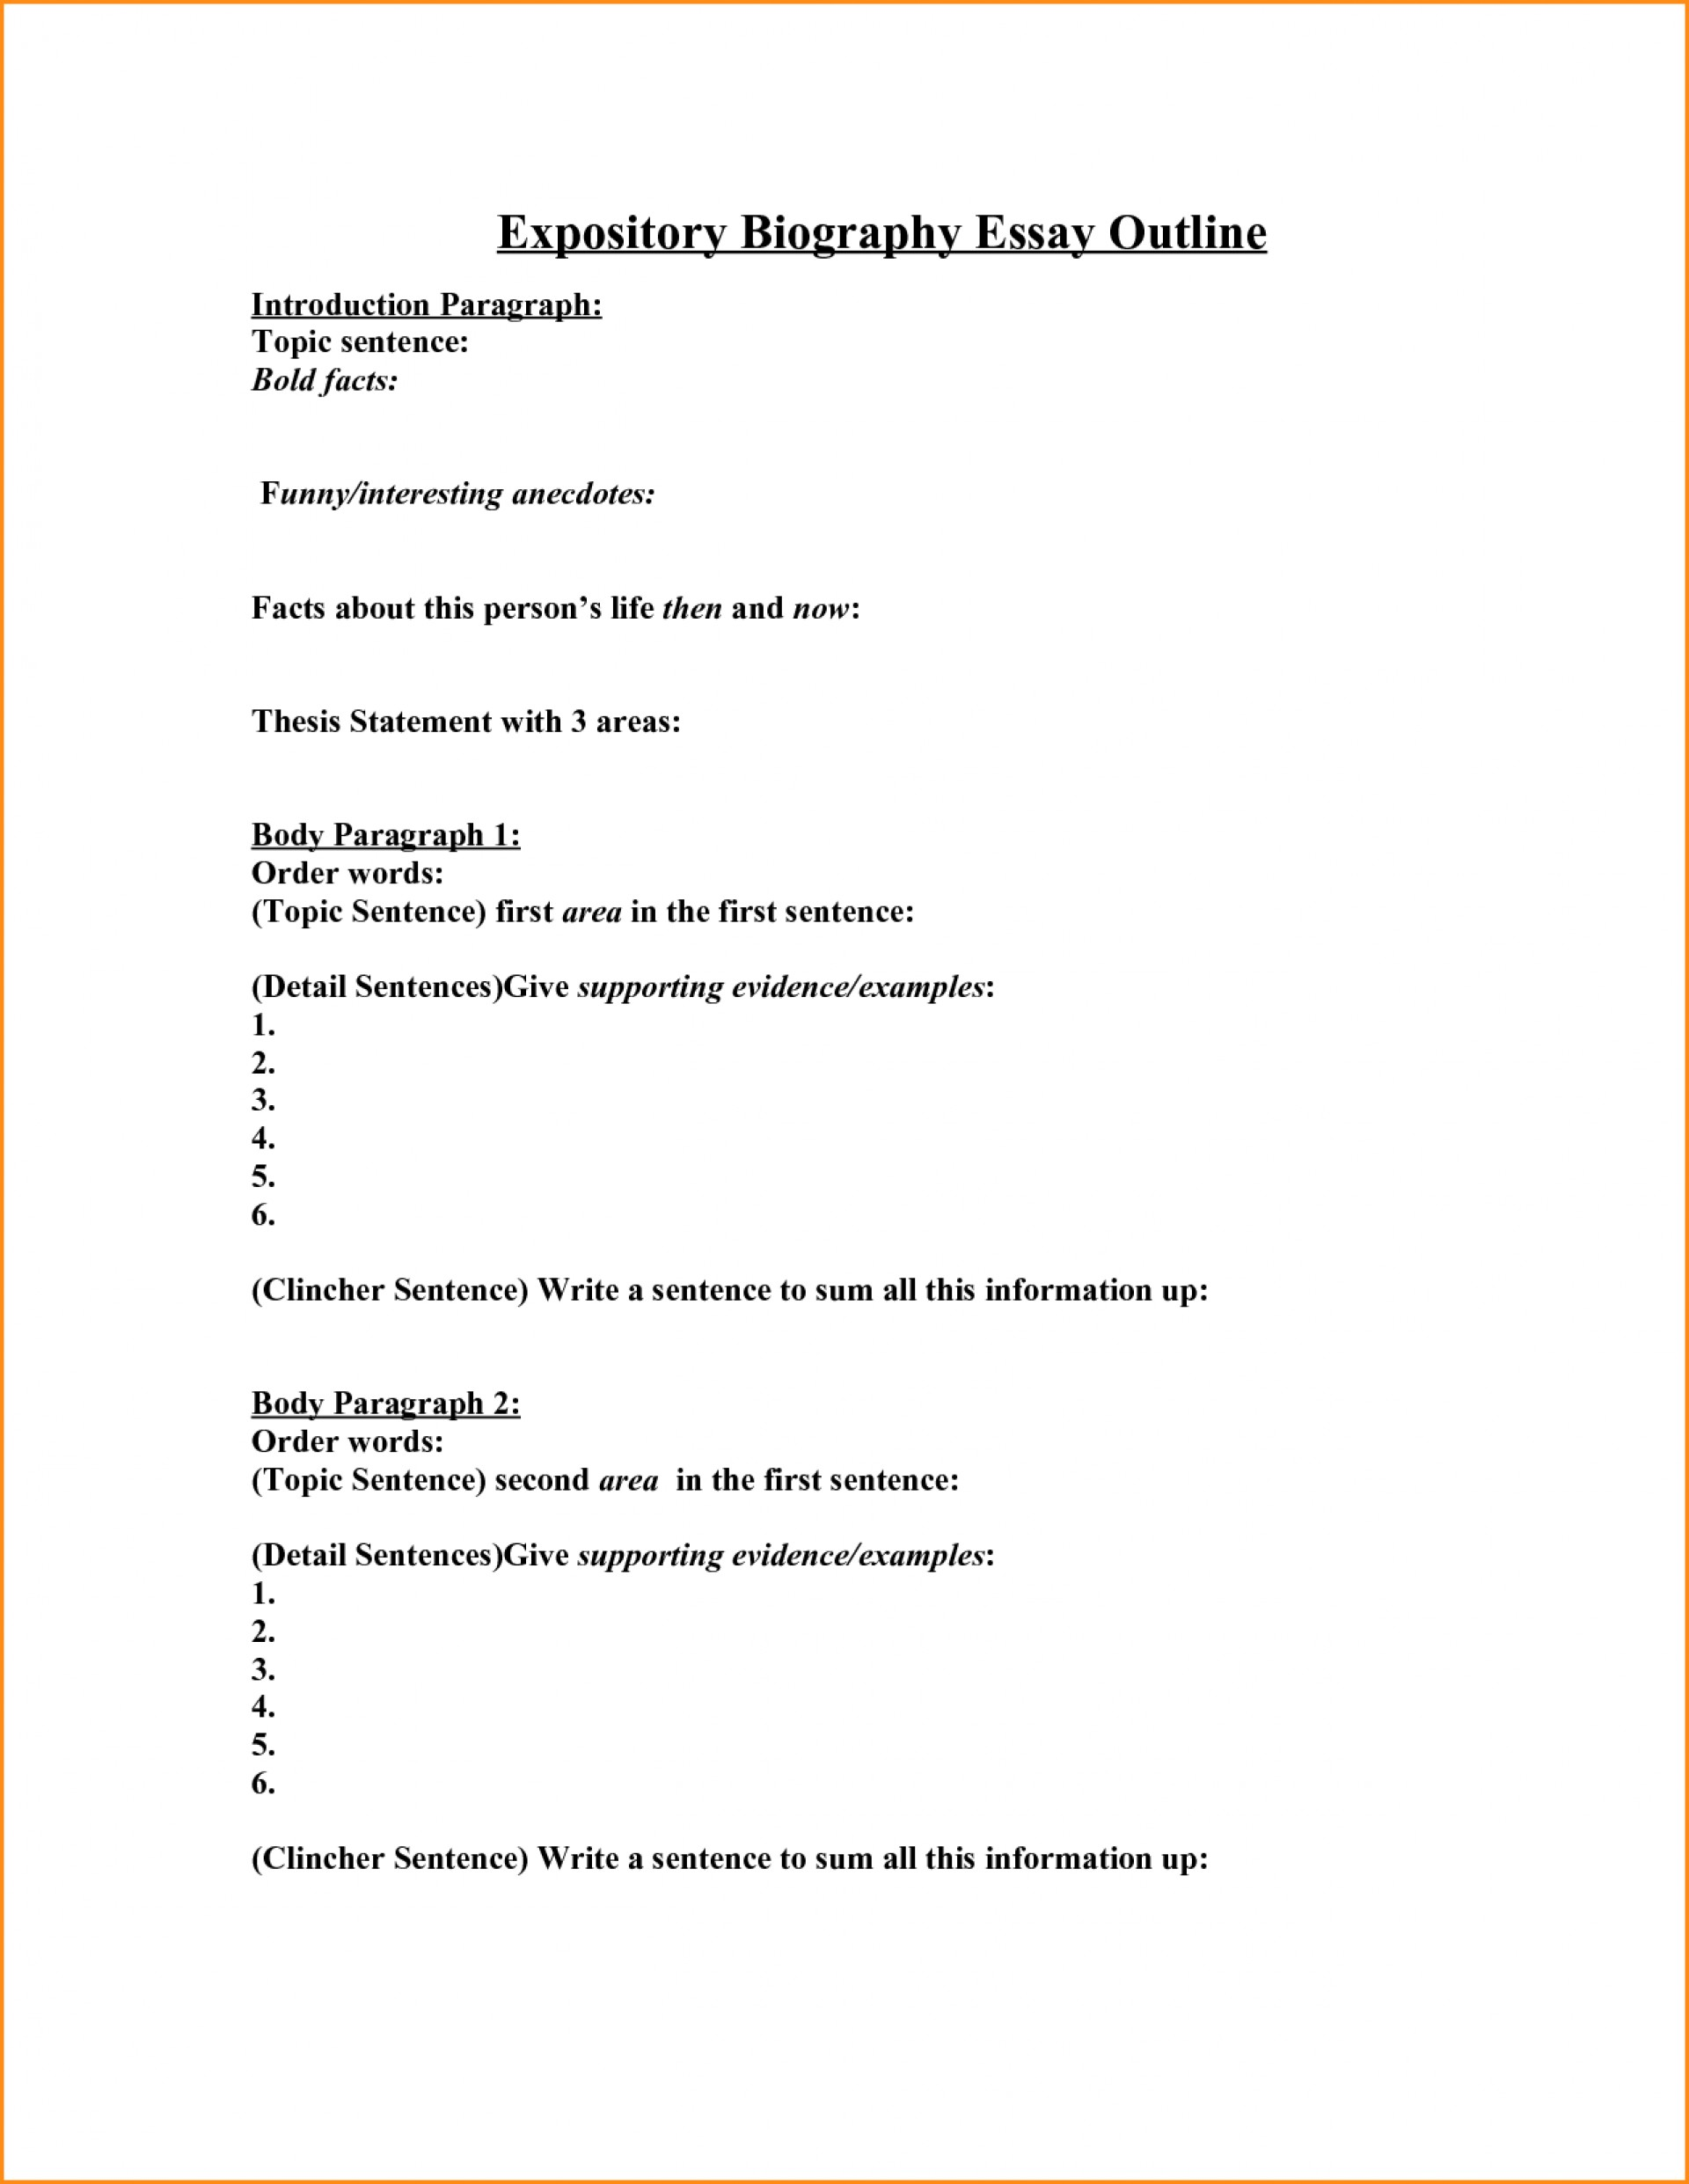 004 Biography Research Paper Outline Sample Future Examples Marvelous 1920